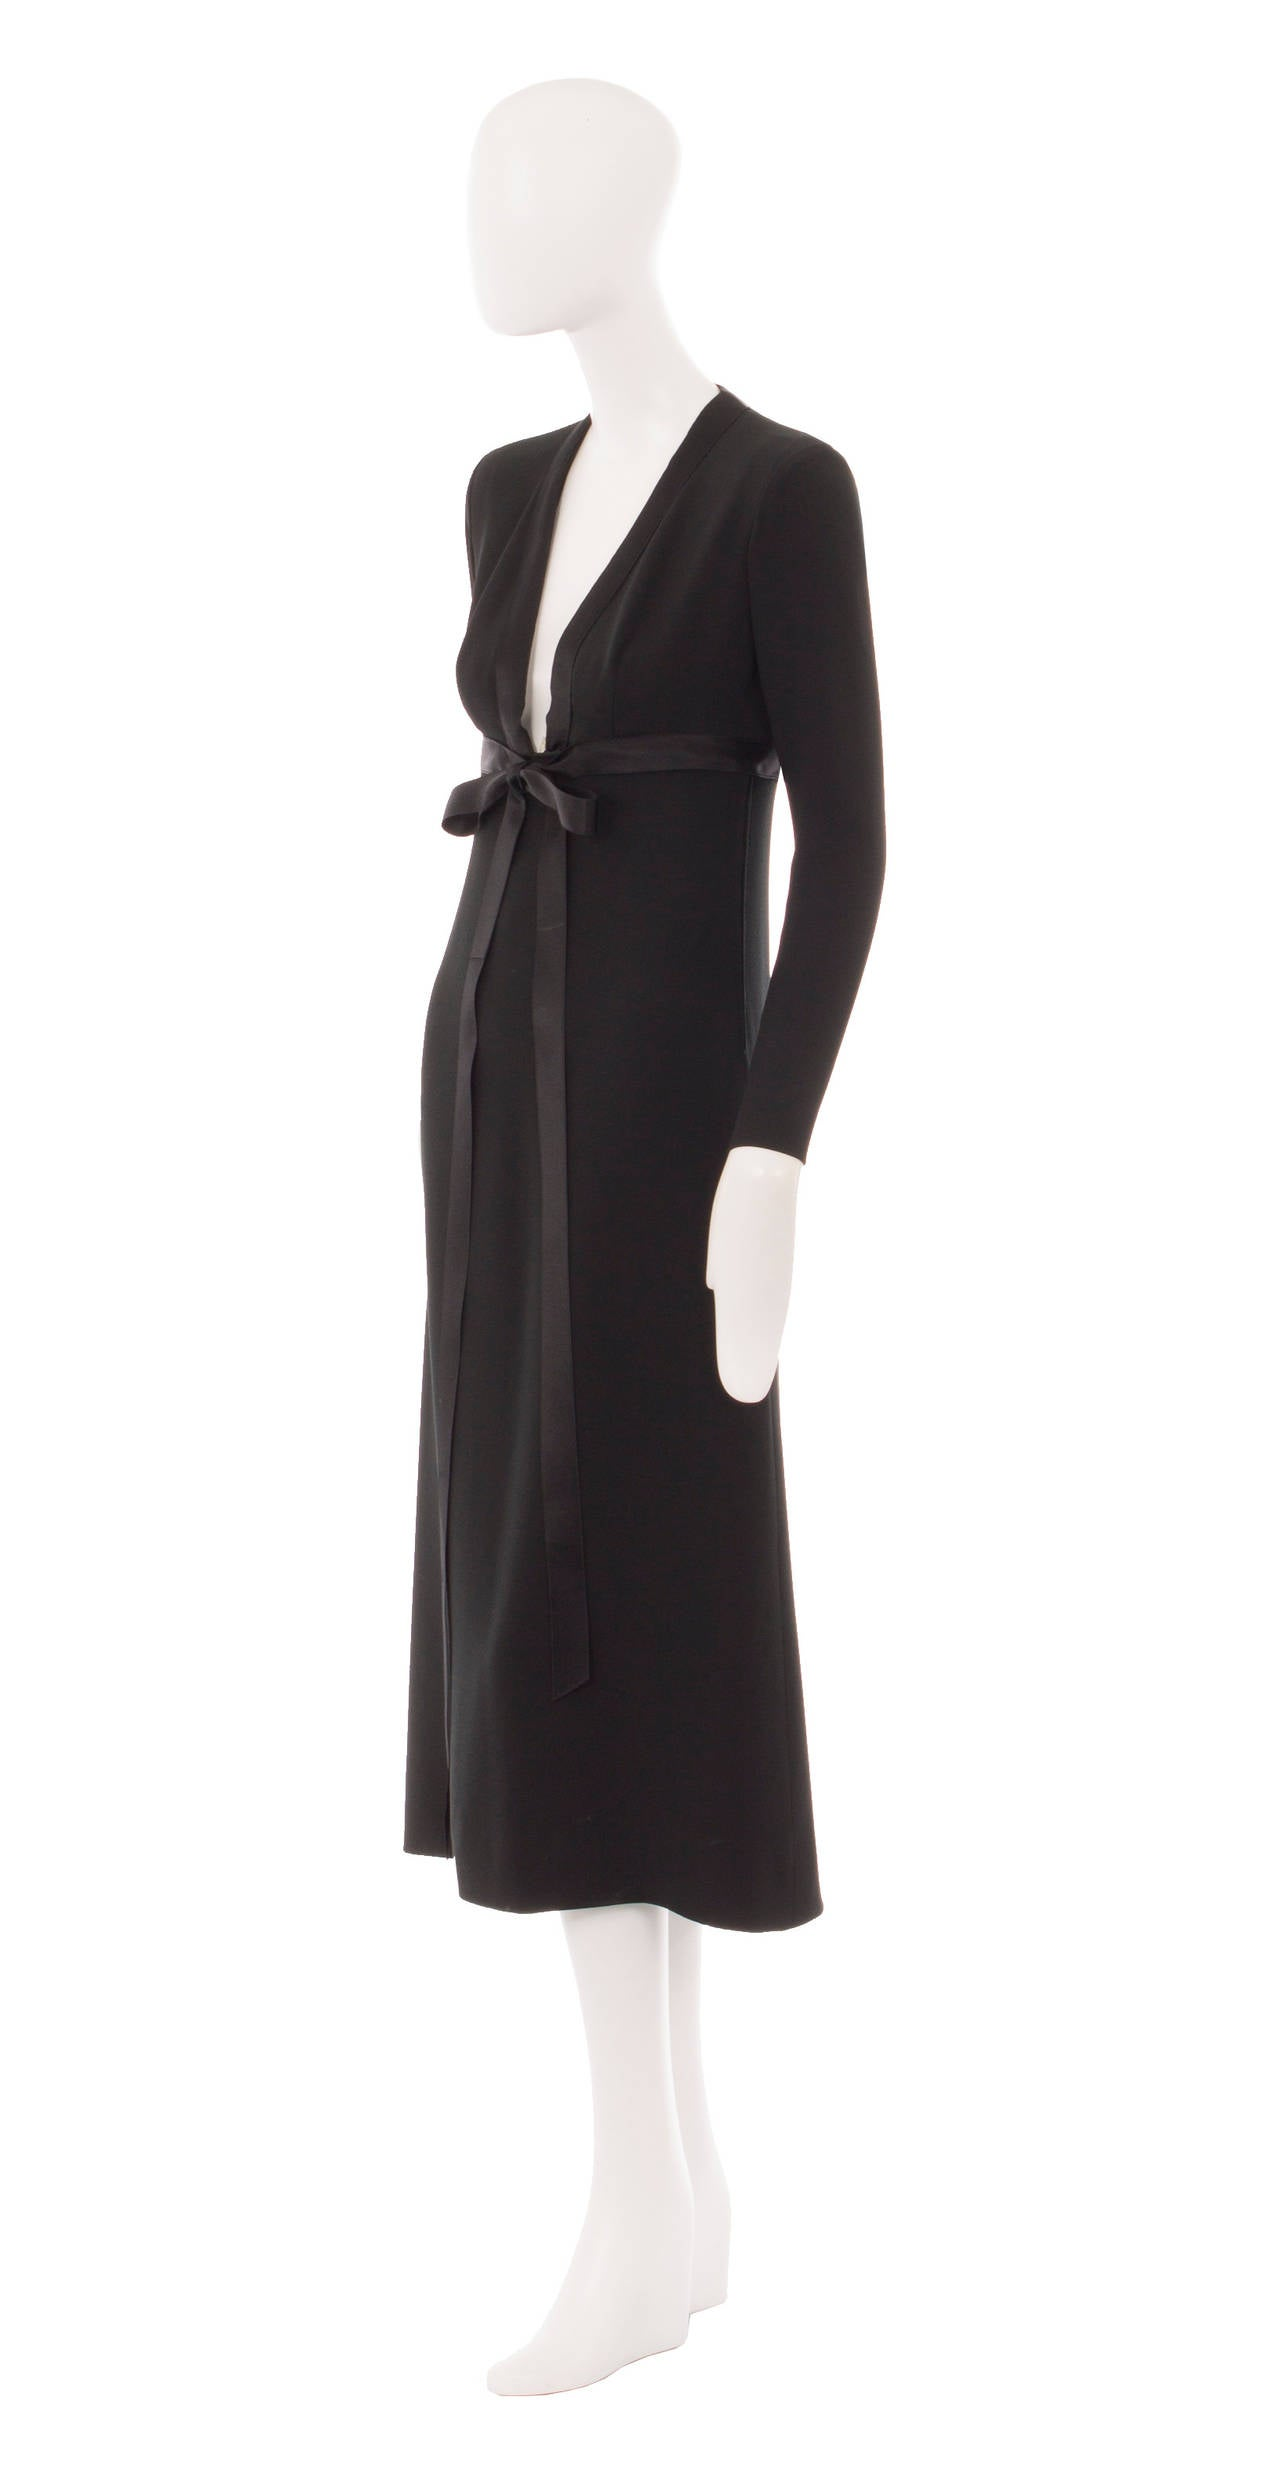 an yves saint laurent haute couture dress circa 1970 for sale at 1stdibs. Black Bedroom Furniture Sets. Home Design Ideas